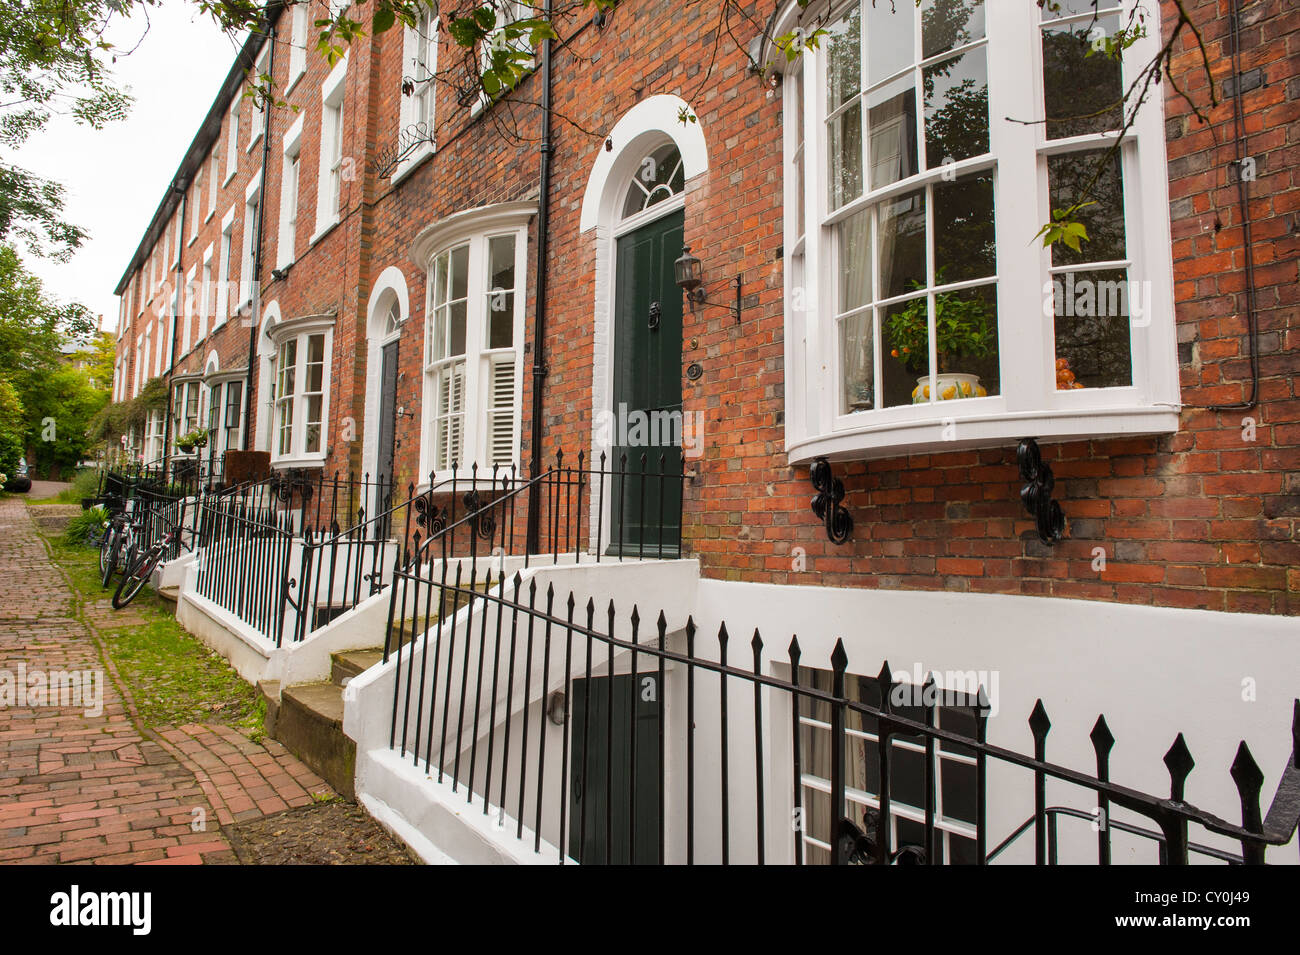 Kent Royal Tunbridge Wells Bedford Terrace typical Georgian red brick houses bay windows basements steps metal iron - Stock Image